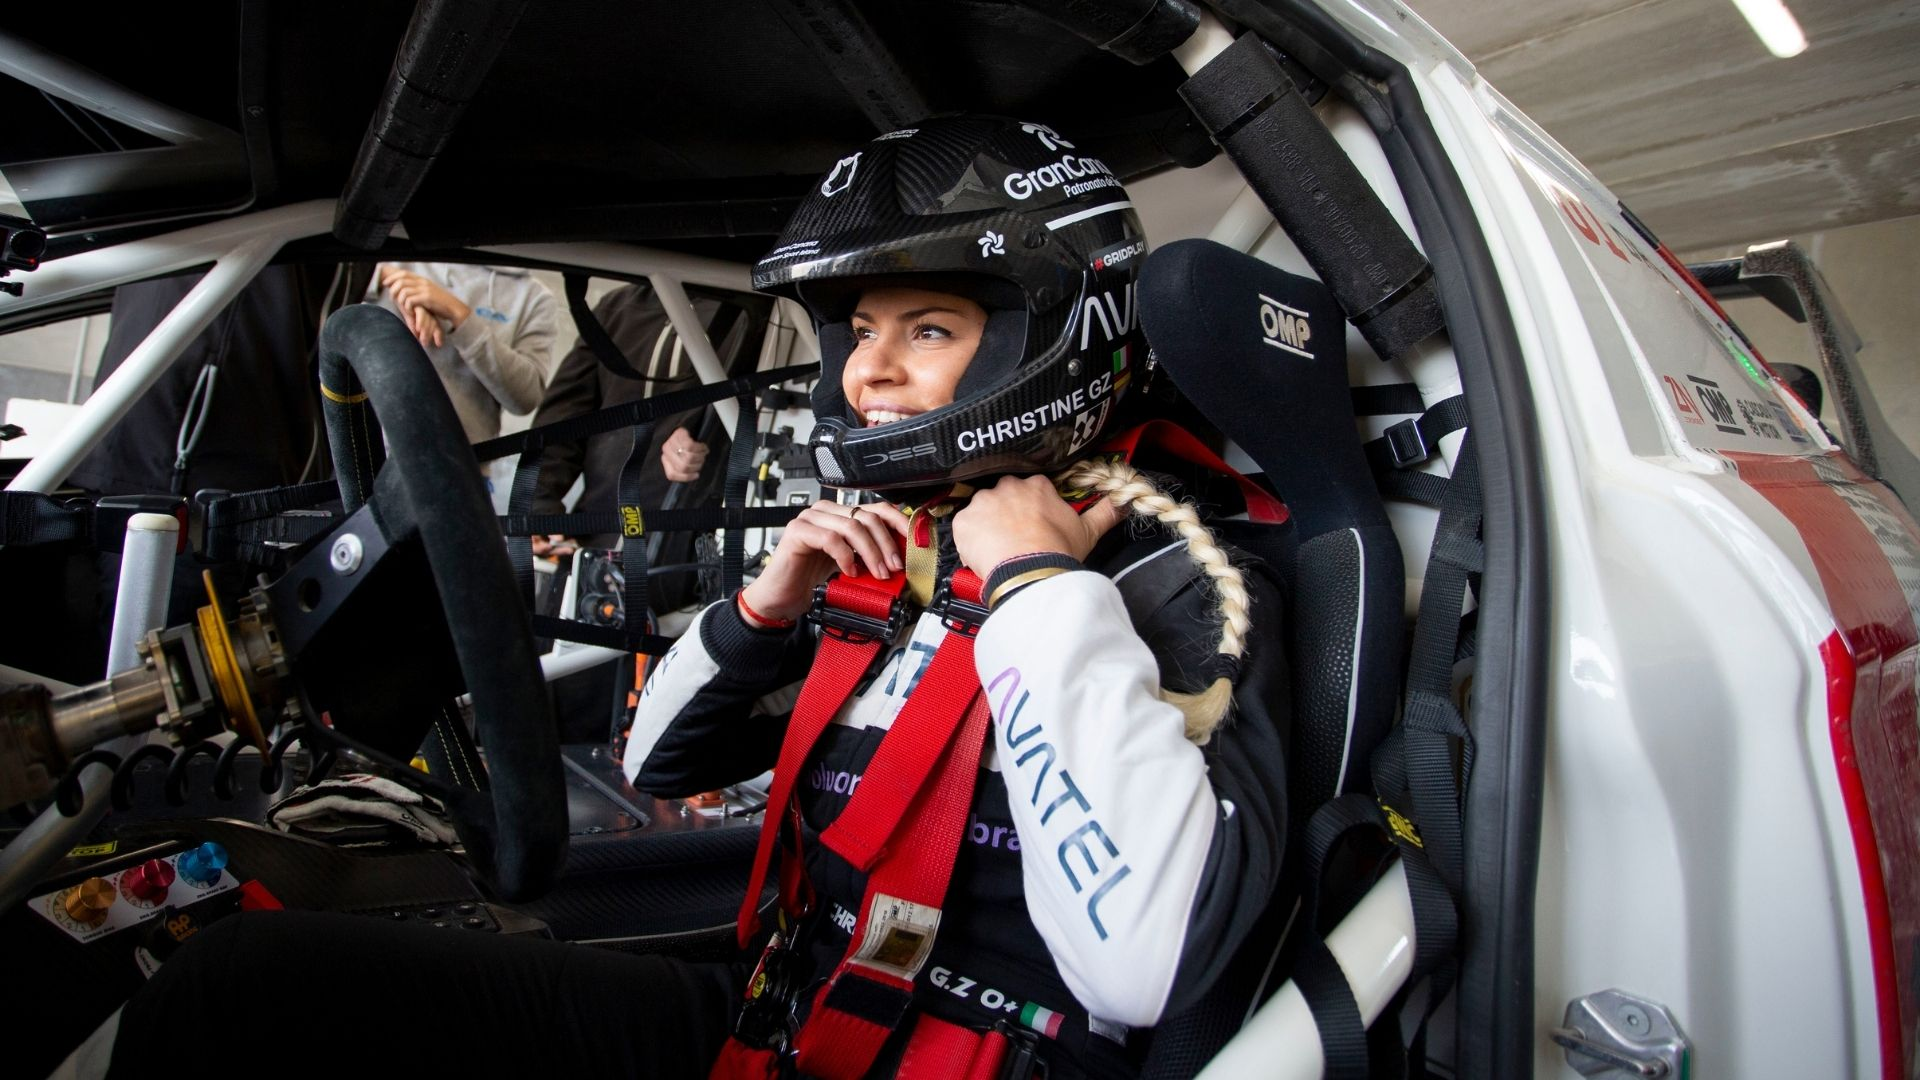 Christine GZ joins Spa line-up as off-road ace makes RX2e bow in Belgium